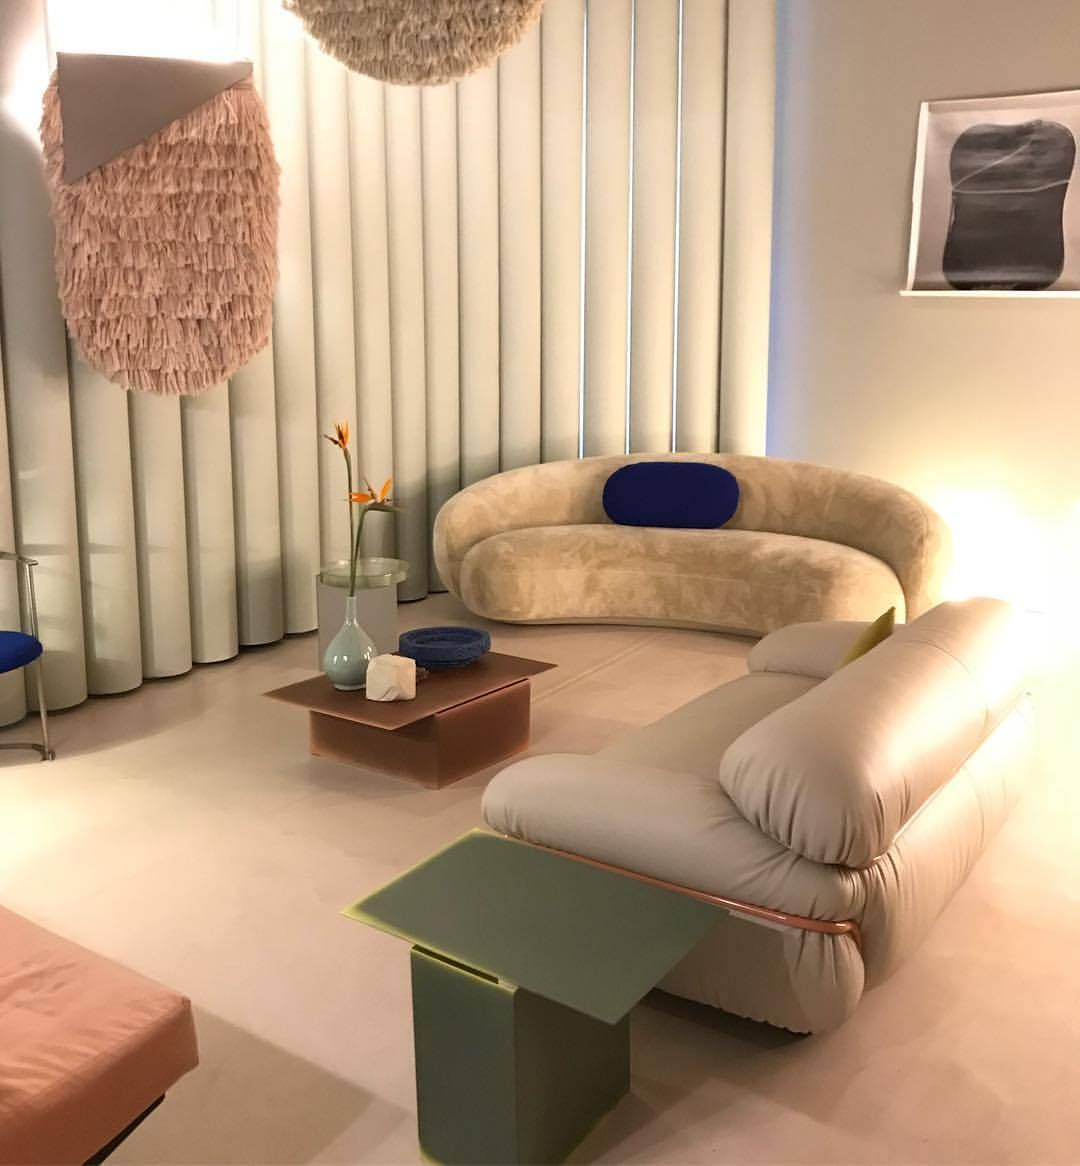 Love This 80s Retro Inspired Living Room With The Curved Sofa